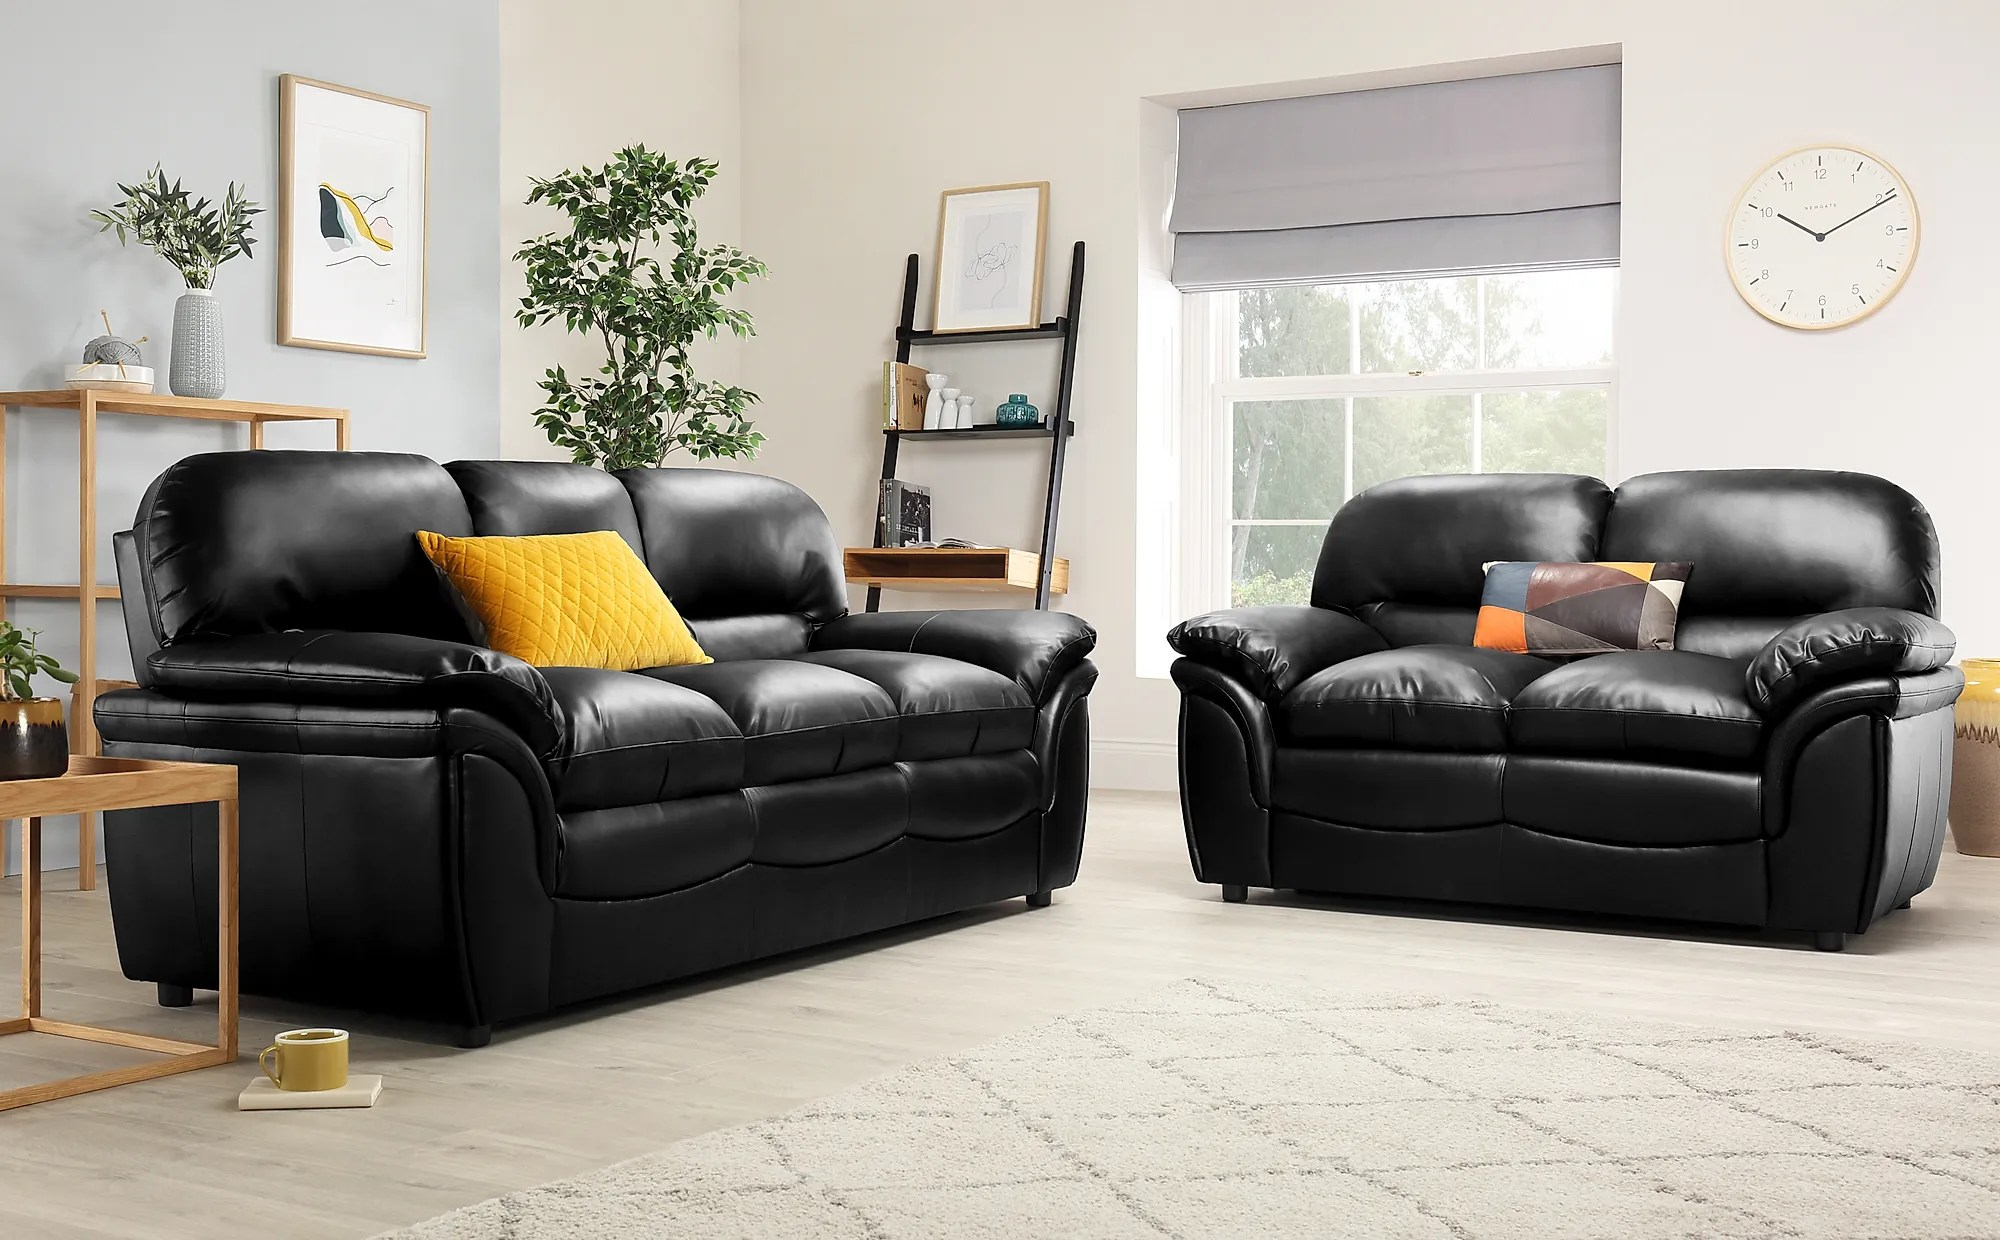 Rochester Black Leather 3 2 Seater Sofa Set Furniture Choice